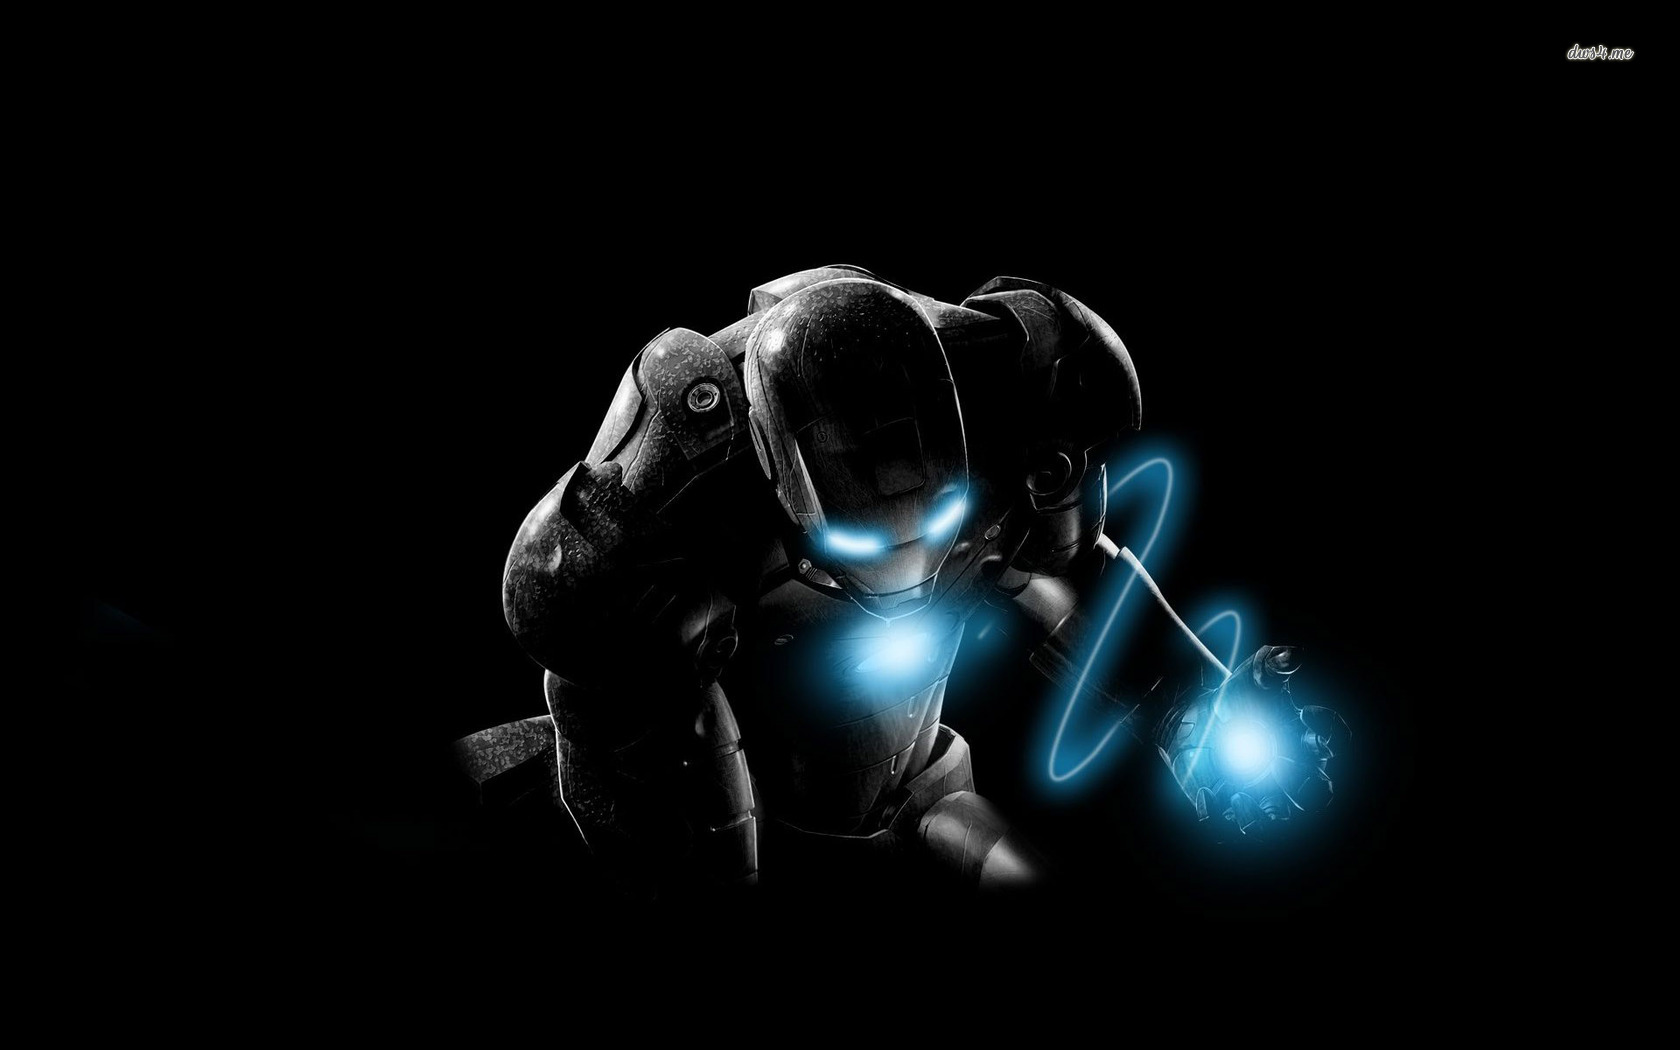 35 Iron Man HD Wallpapers for Desktop - Page 3 of 3 ...